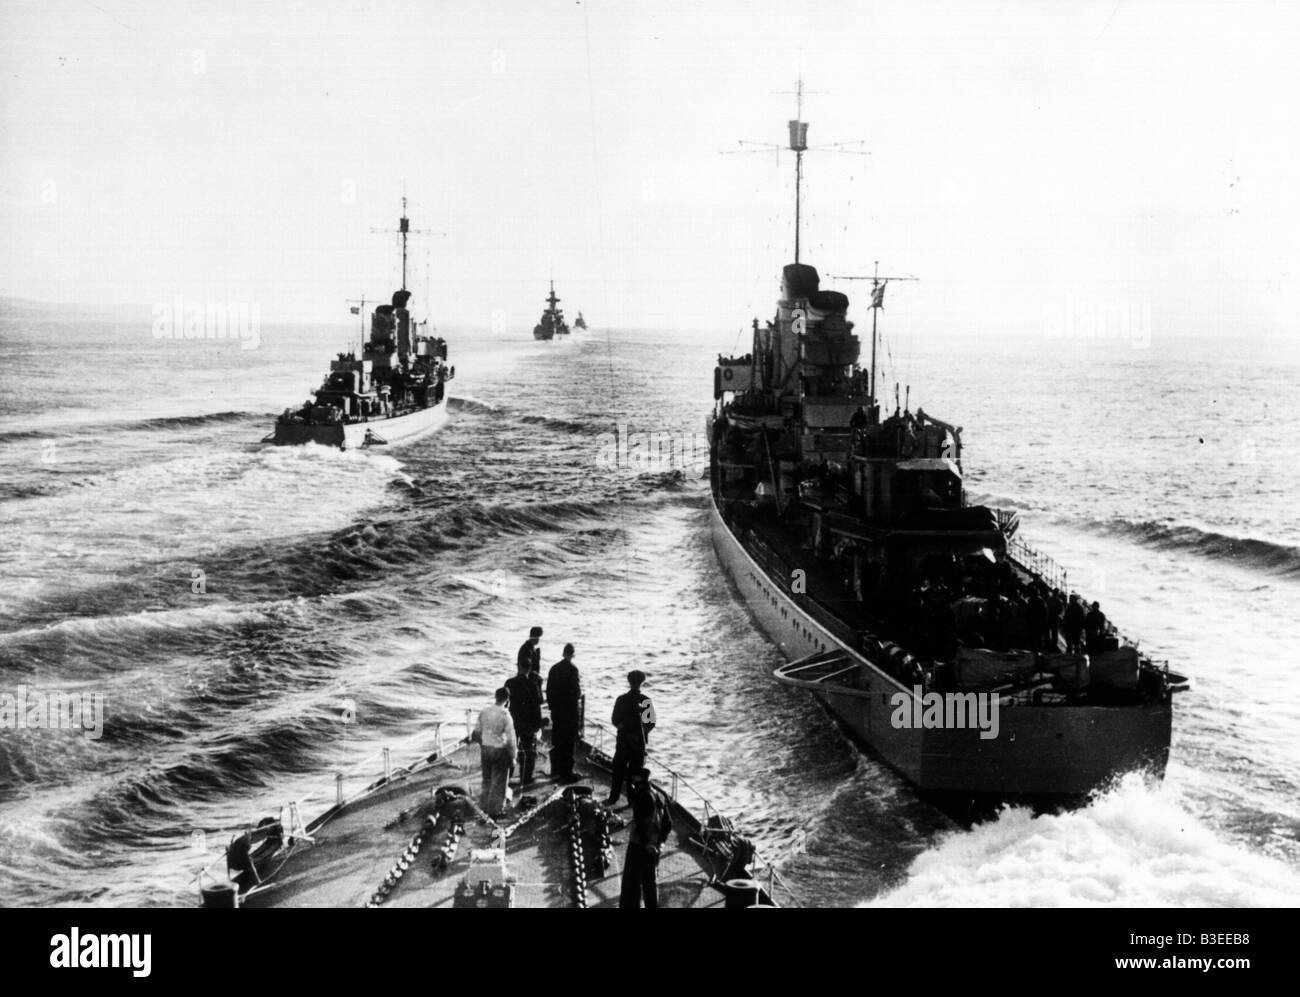 German fleet / World War Two - Stock Image